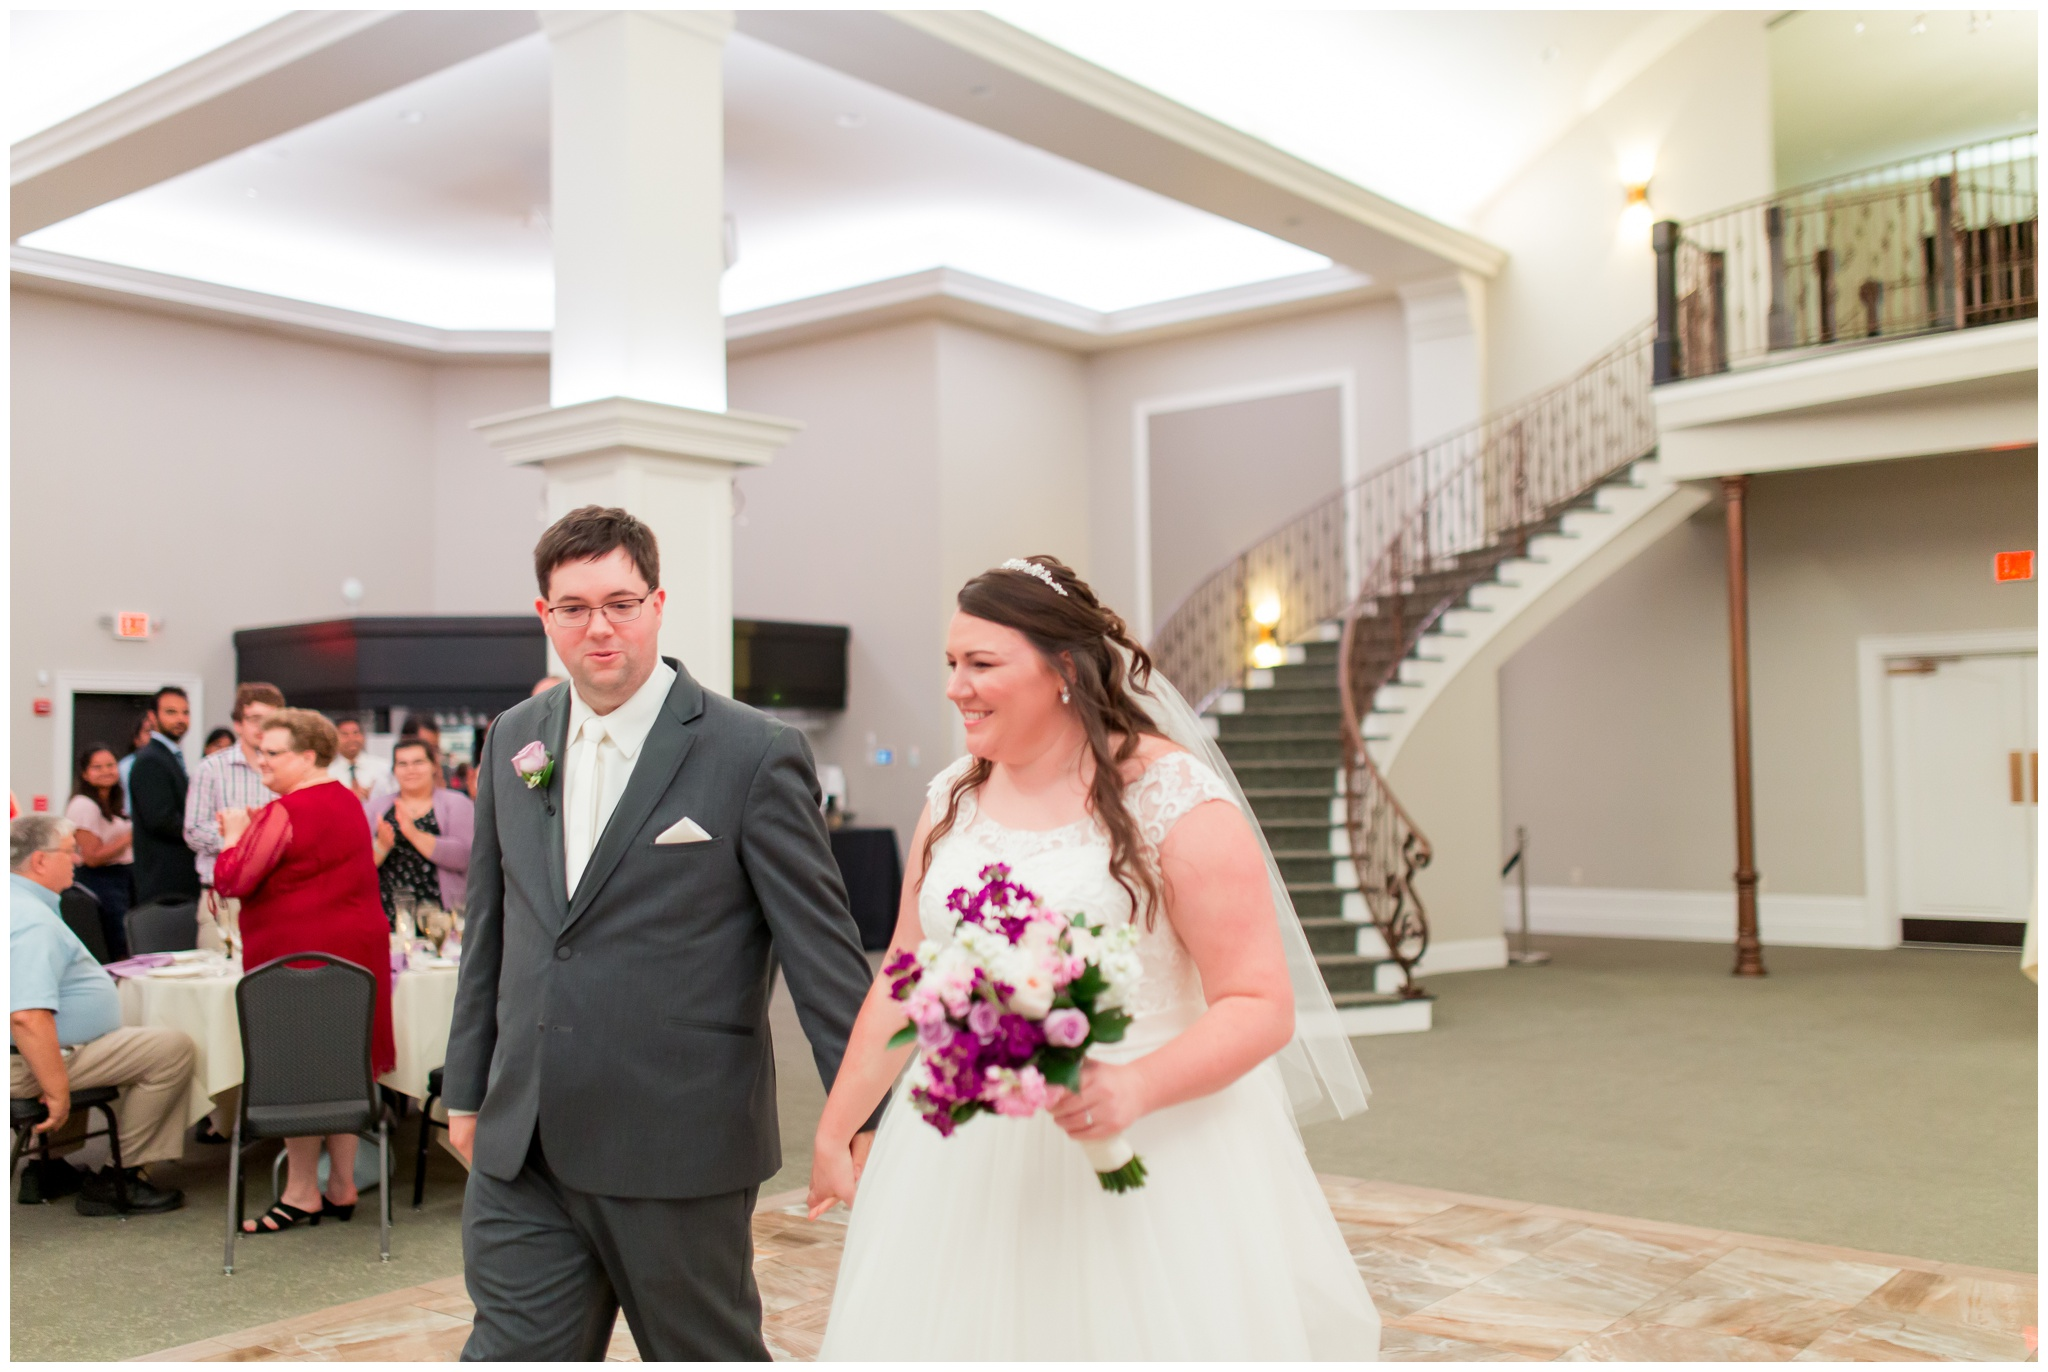 bride and groom walking into reception at Bel Air Events in Kokomo Indiana